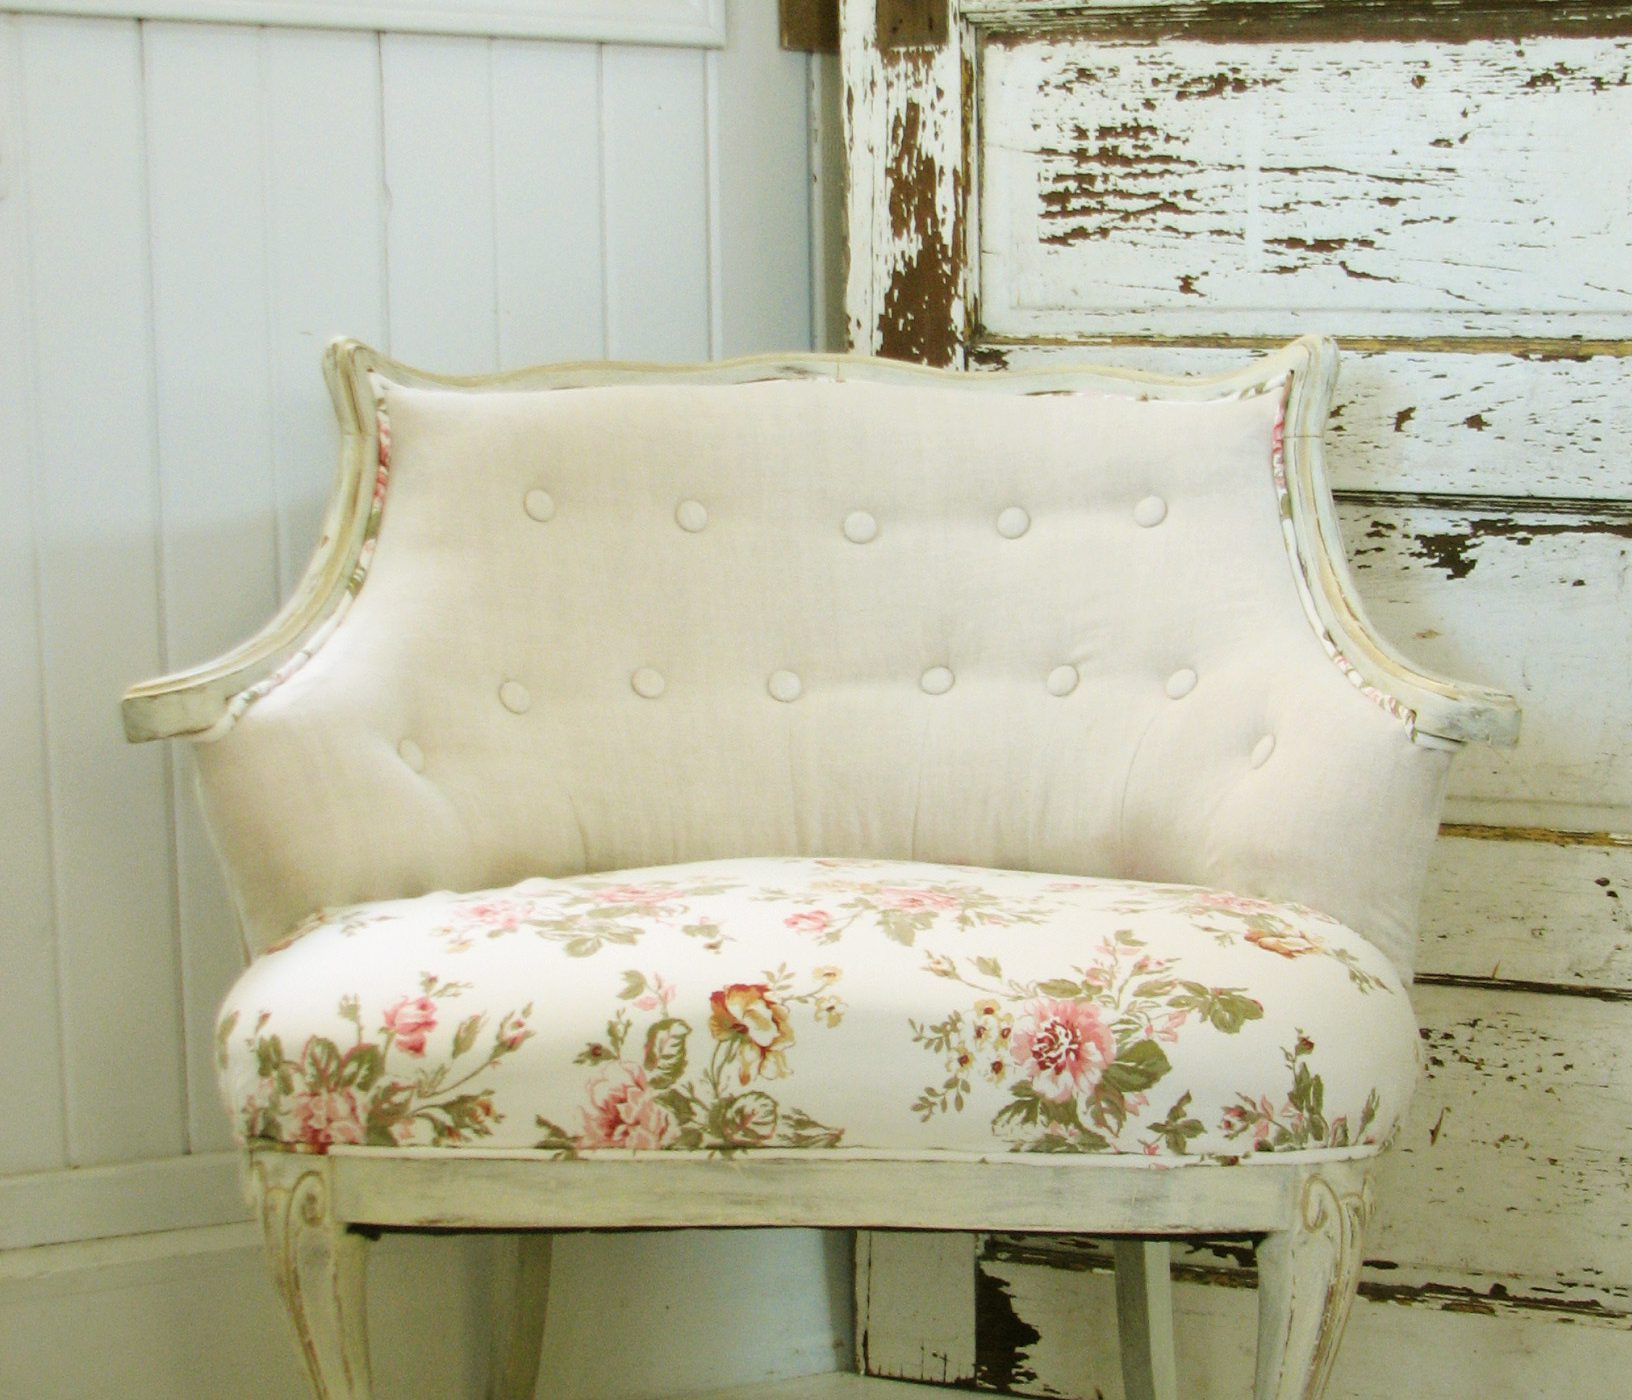 Vintage Tufted Chair with Awfully Itchy Fabric Gets Shabby Chic Makeover by Prodigal Pieces www.prodigalpieces.com #prodigalpieces